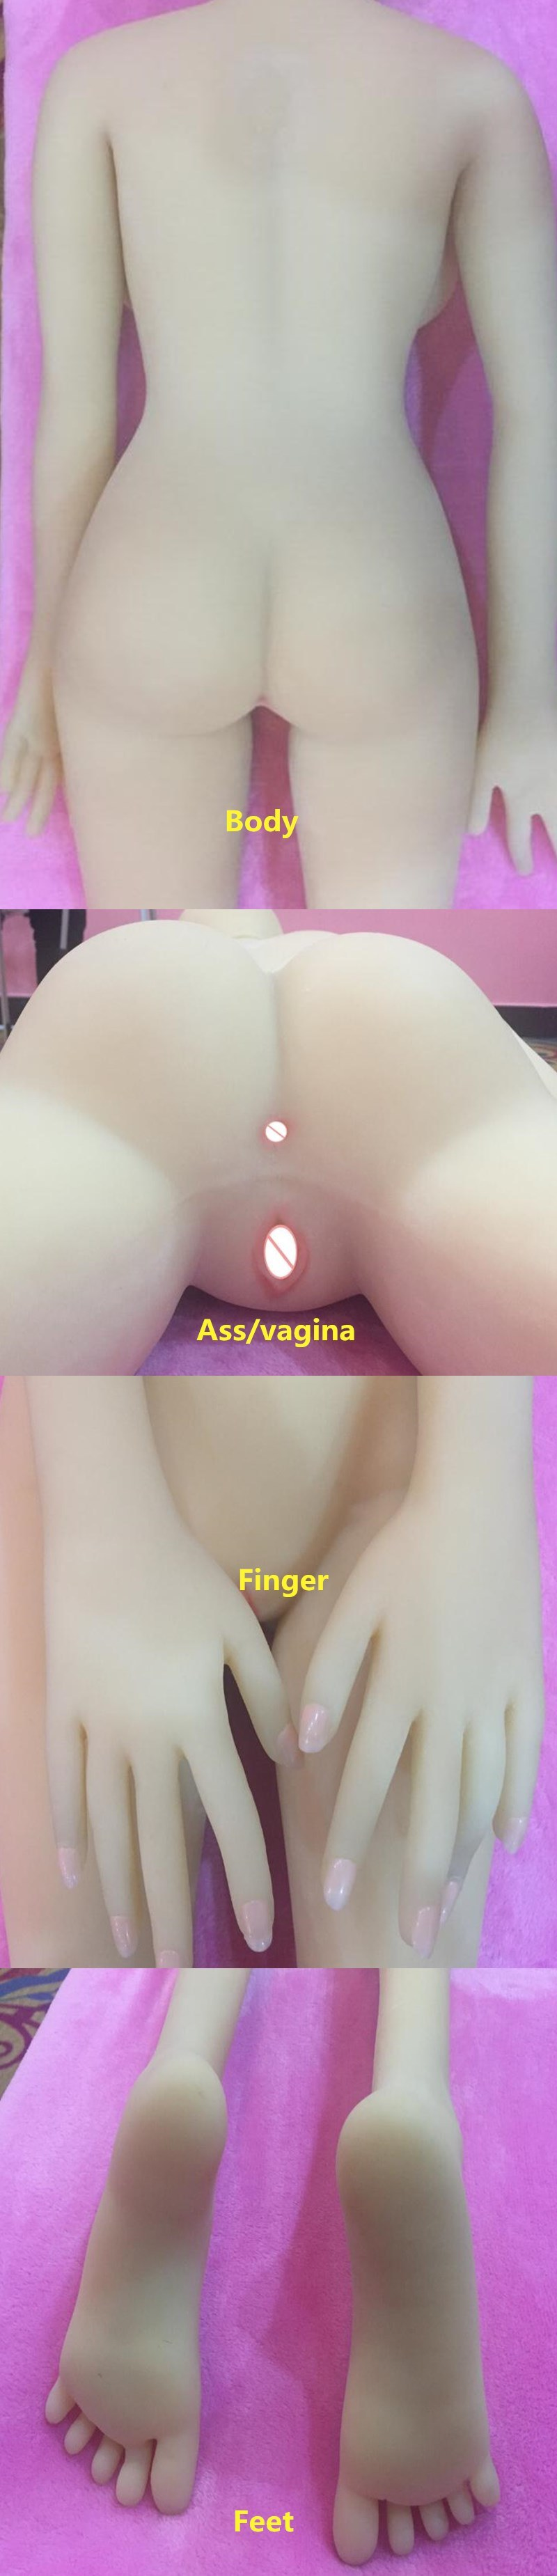 Realistic Sex Dolls Igrark Sexy Doll, Lifelike Real Full TPE Silicone Sex Doll for Men, Anus Vagina Big Breast Dolls, Male Sex Toy